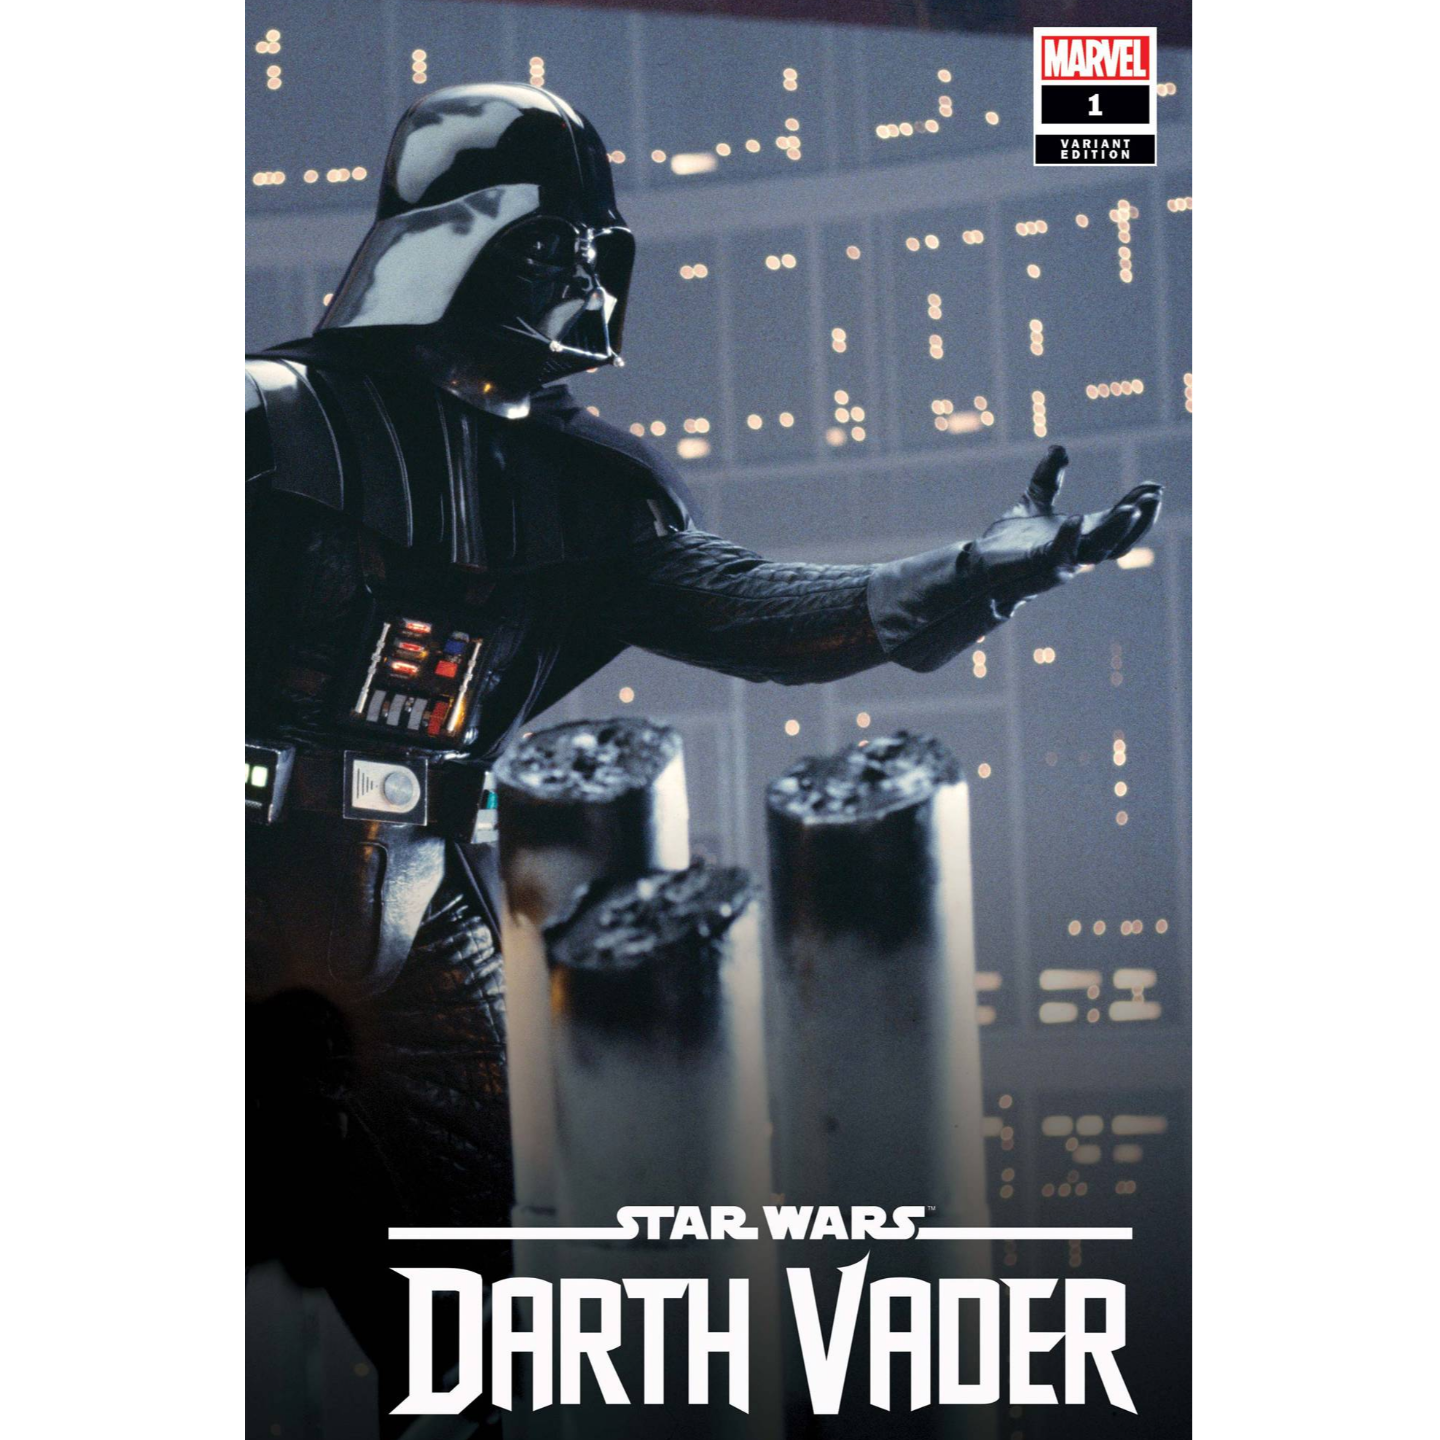 STAR WARS: DARTH VADER #1 - MOVIE VAR